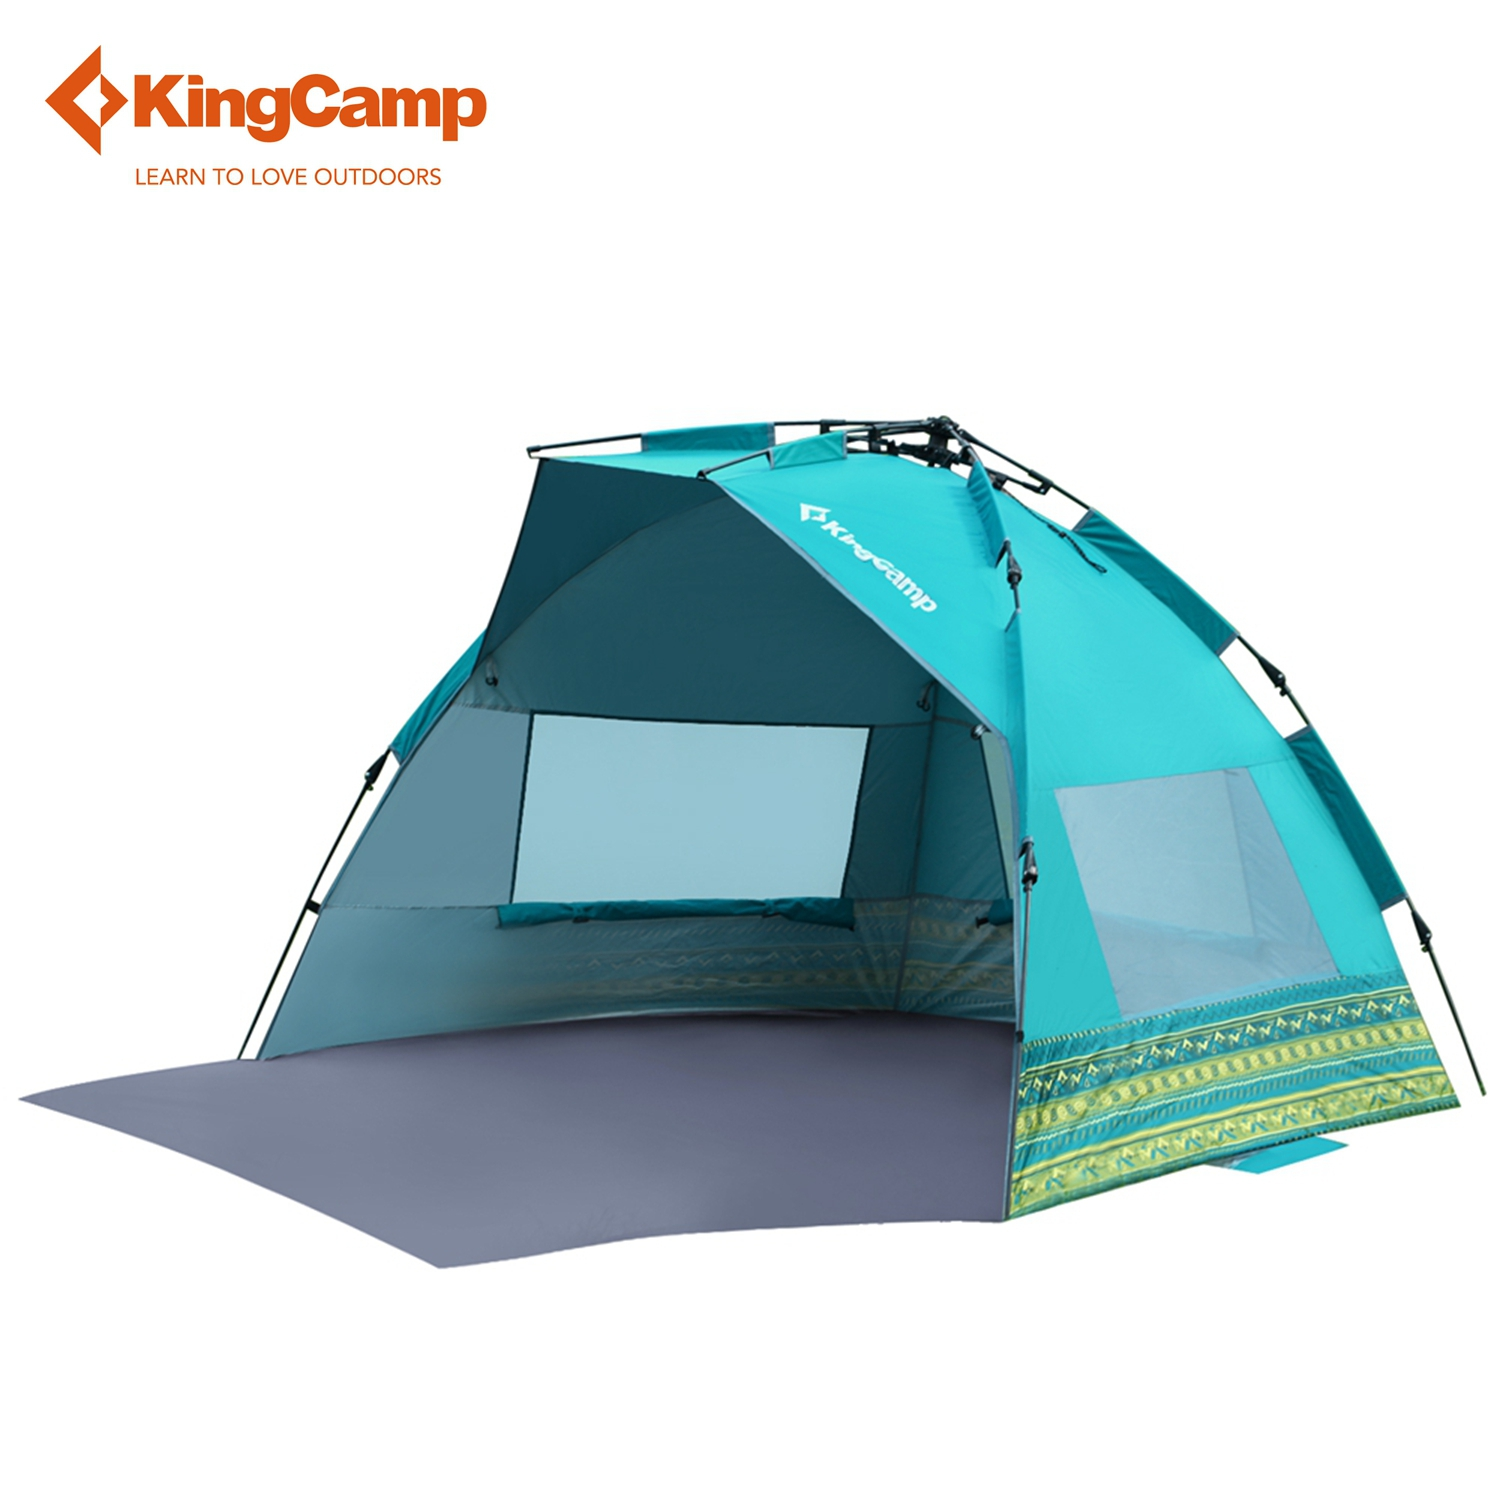 KingCamp Fantasy UPF50+ Easy-up 2-Person Beach Tent Sun Shelter Outdoor Camping Tents for Fishing Hiking Trekking high quality outdoor 2 person camping tent double layer aluminum rod ultralight tent with snow skirt oneroad windsnow 2 plus